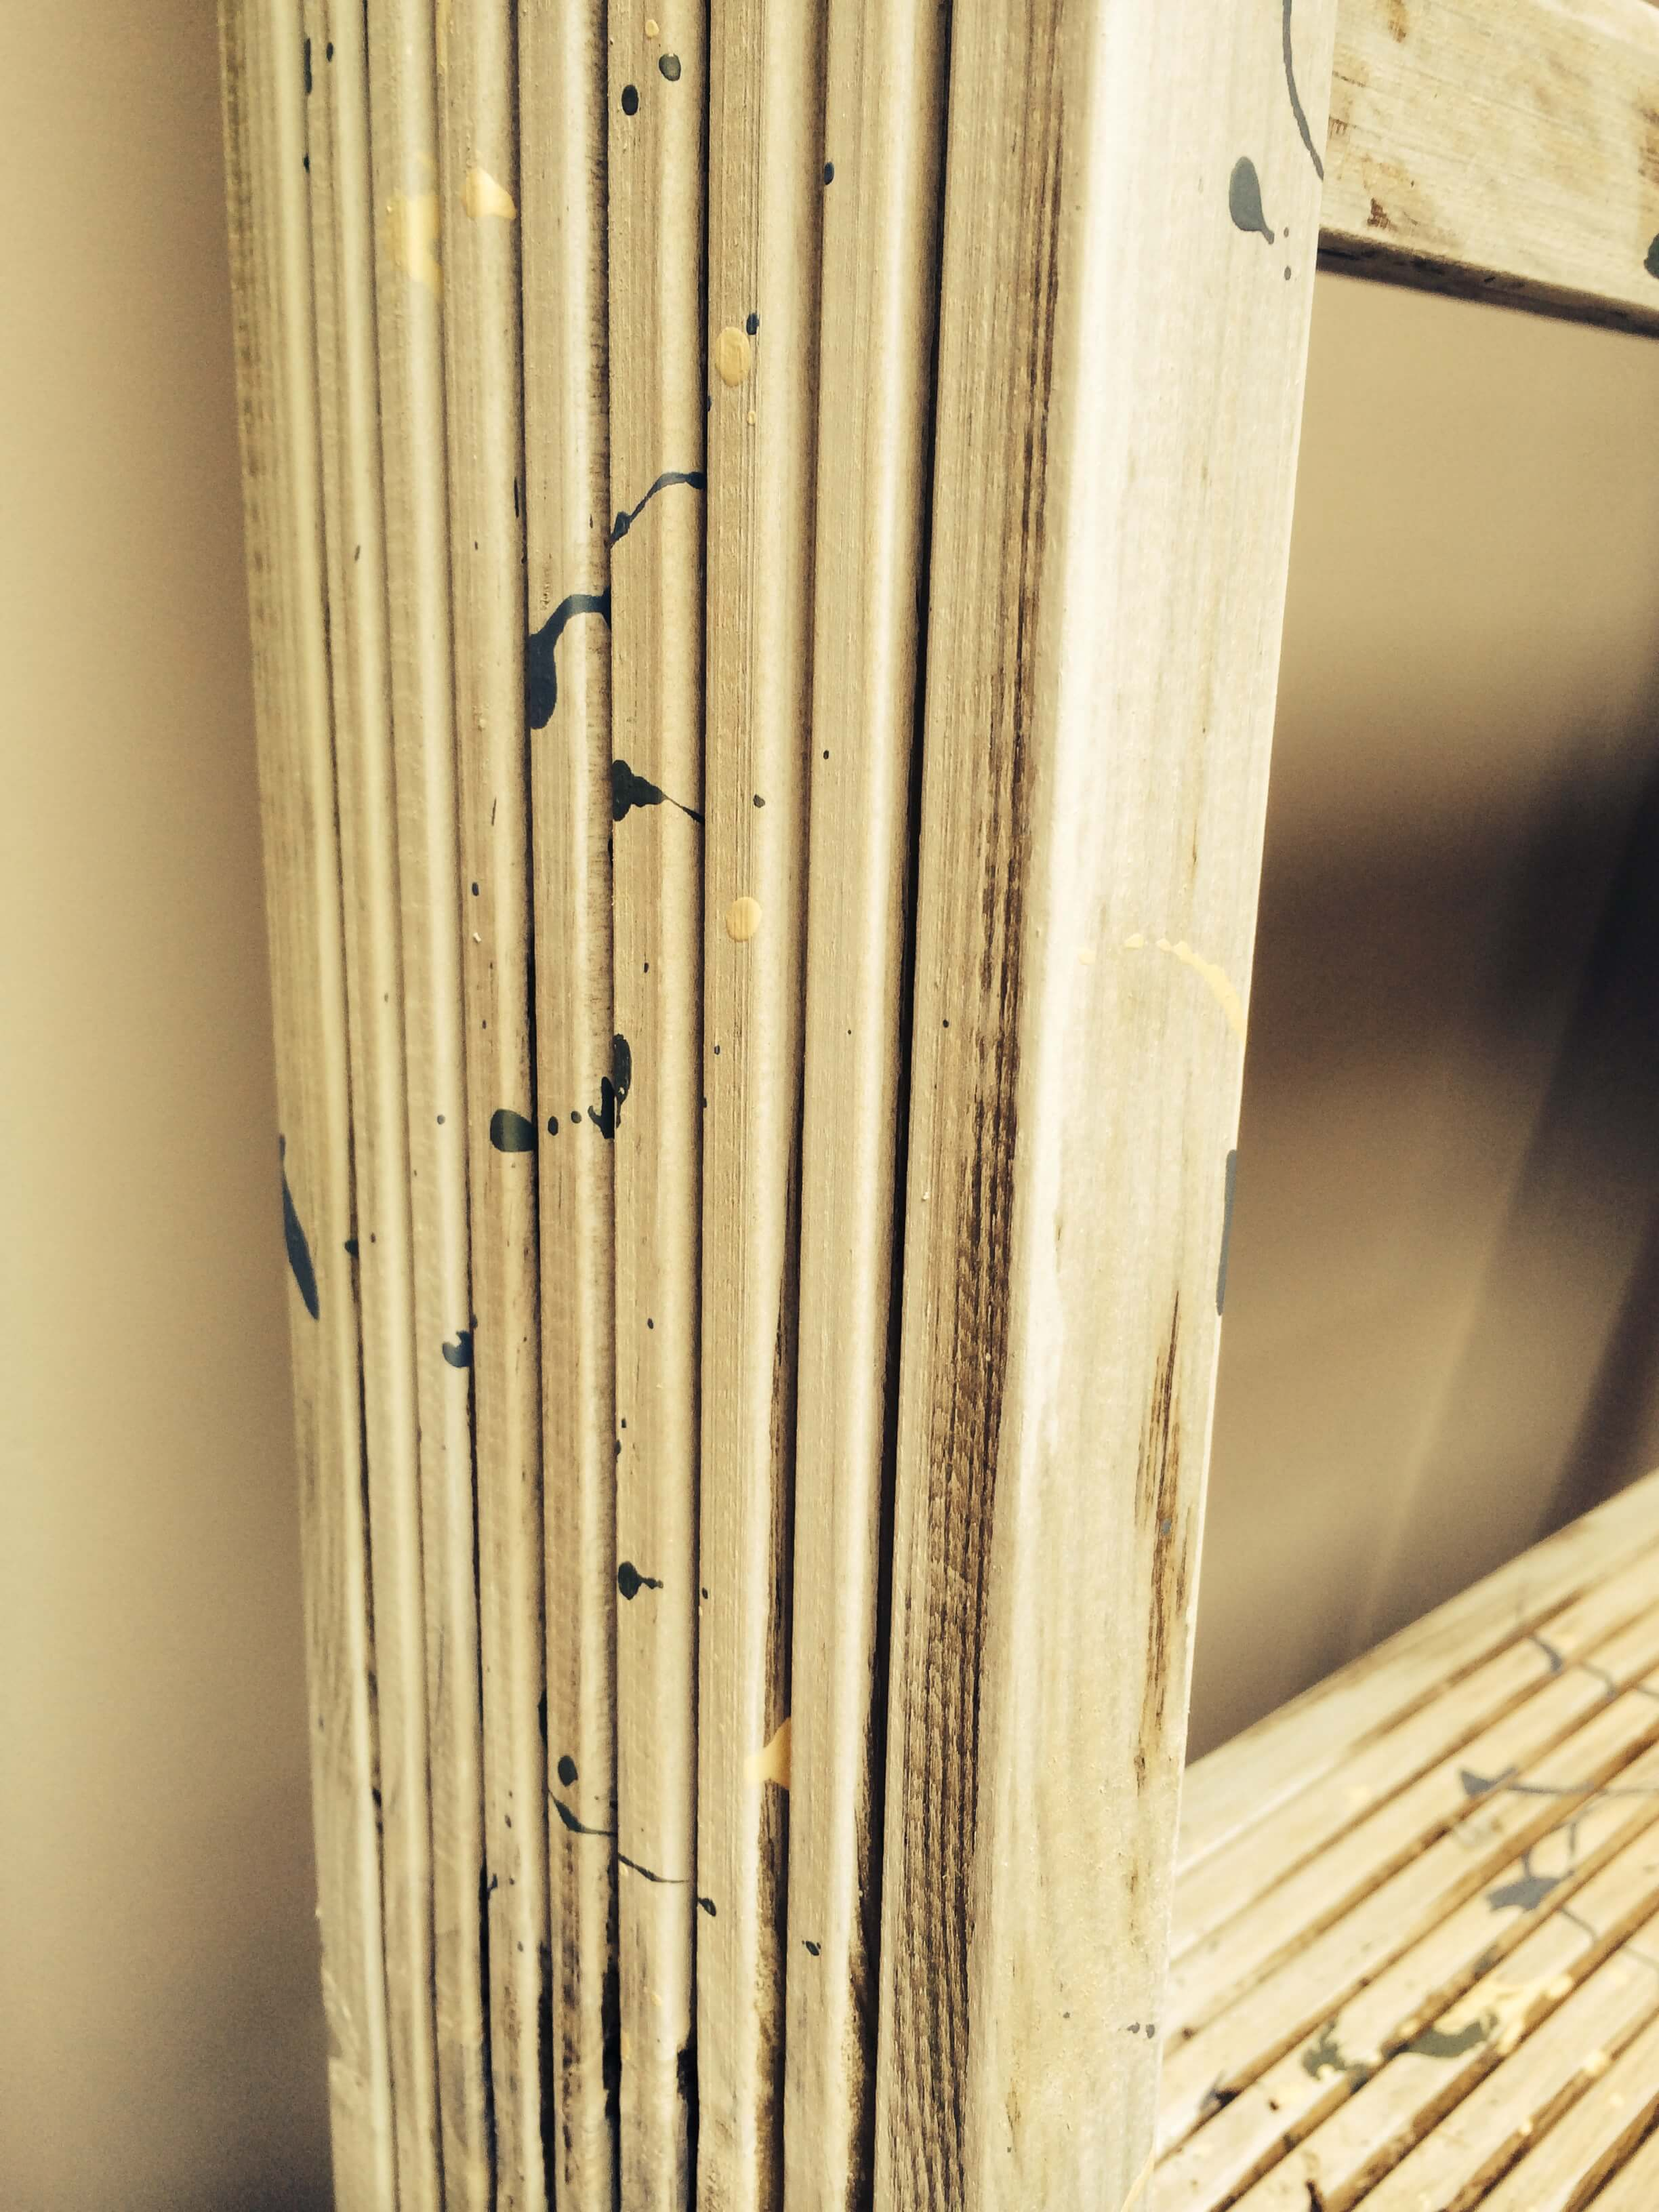 A close up of the side of the shelf, showing off the grain of the treated Scandinavian pine decking wood the shelving is made out of